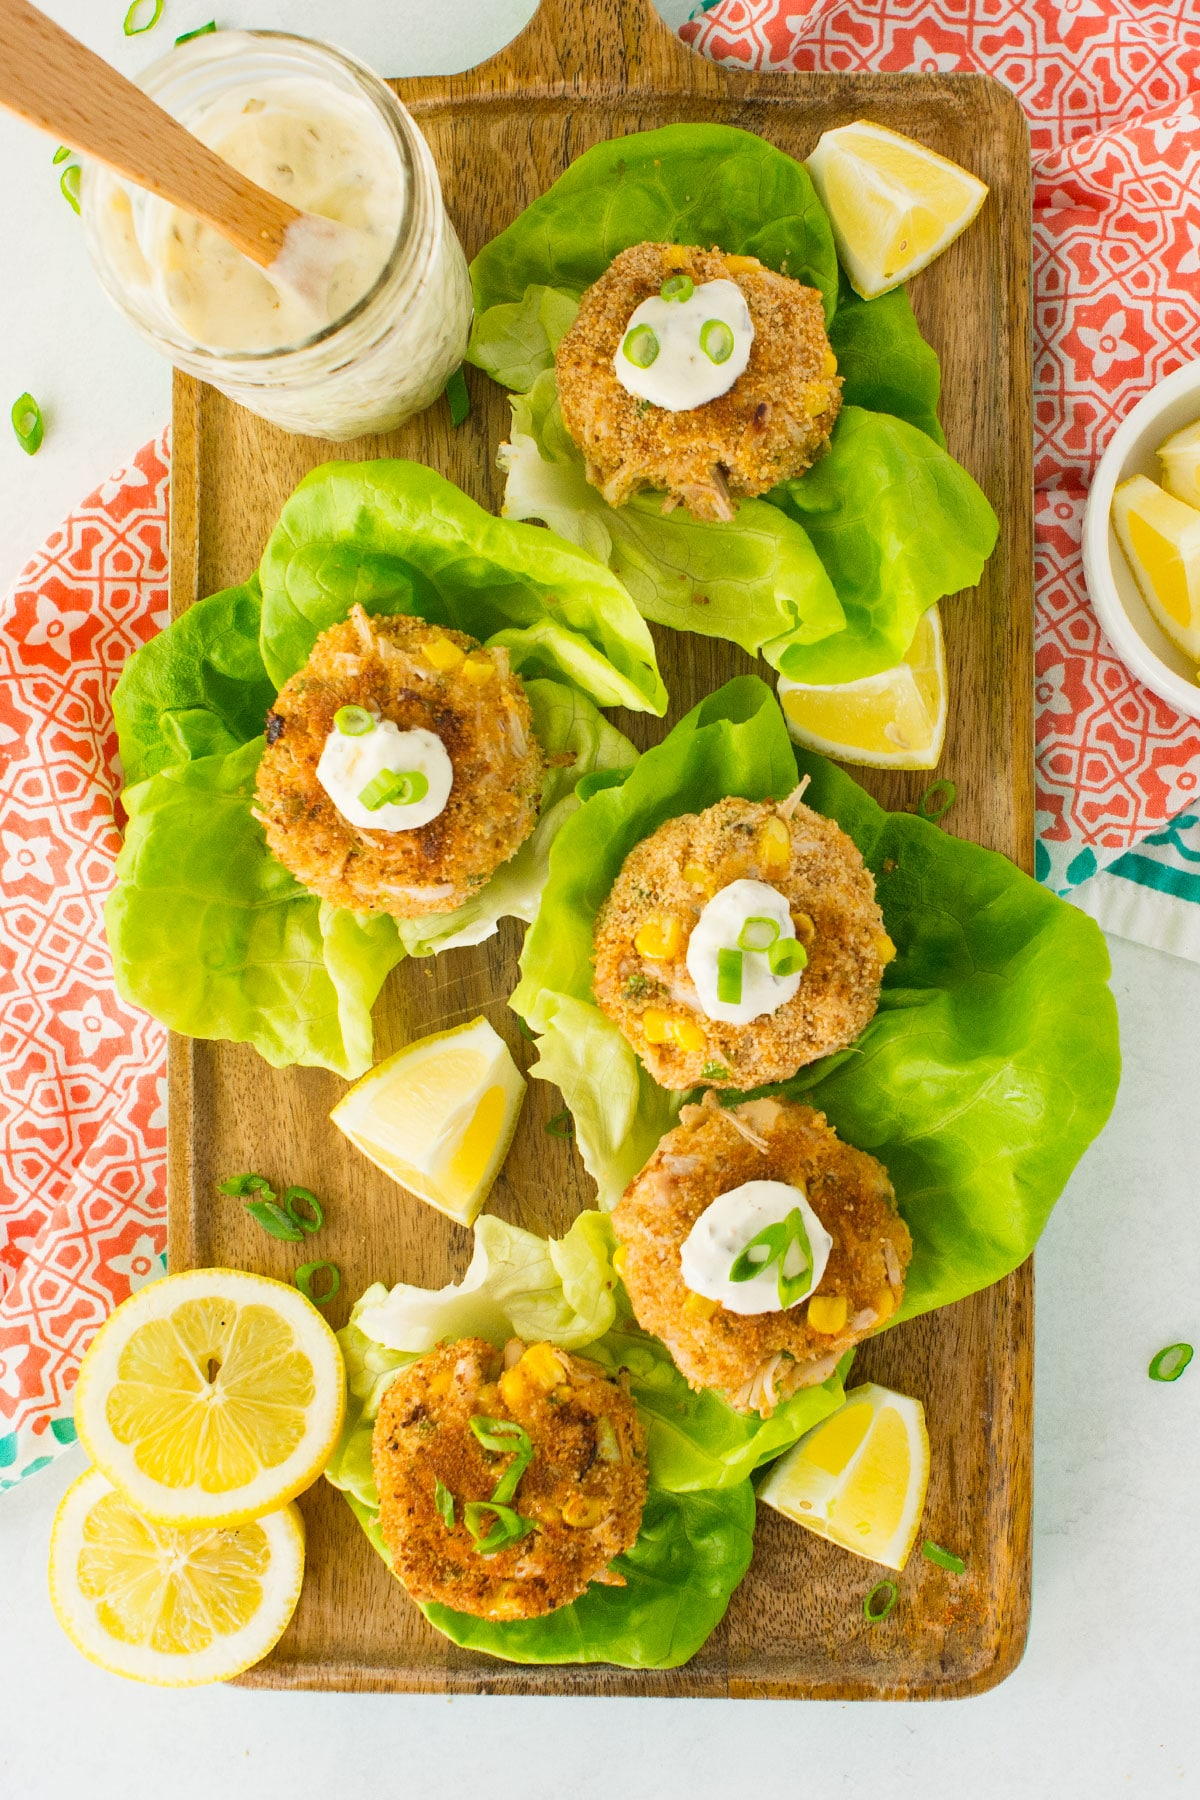 vegan crab cakes with tartar sauce, lemons, and green onions. Made with jackfruit